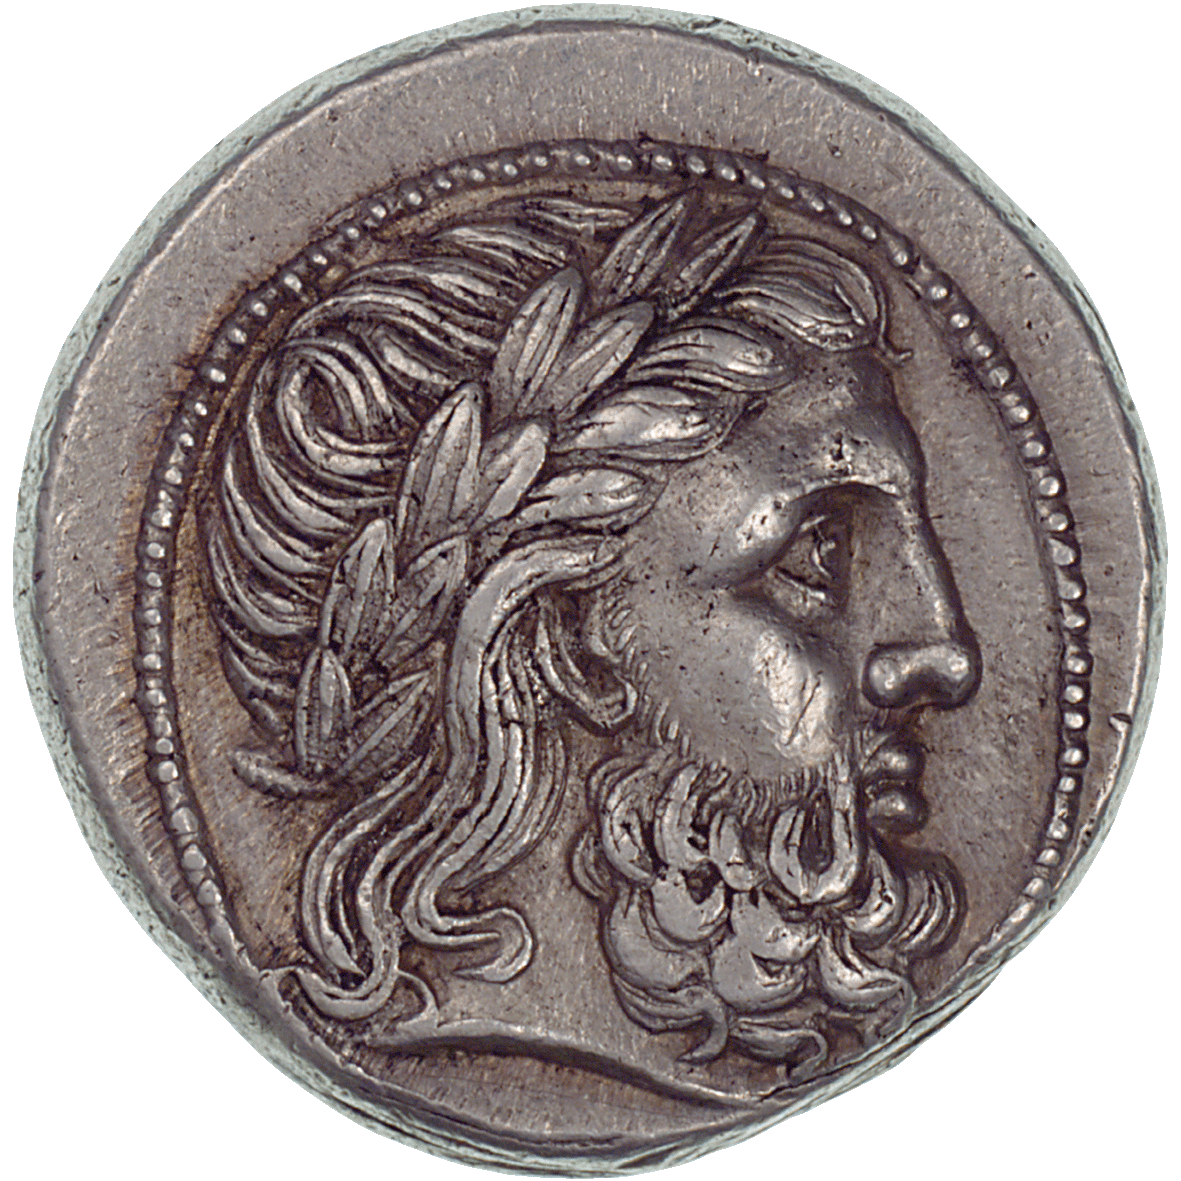 Kingdom of Macedonia, Tetradrachm in the Name of Philip II (obverse)